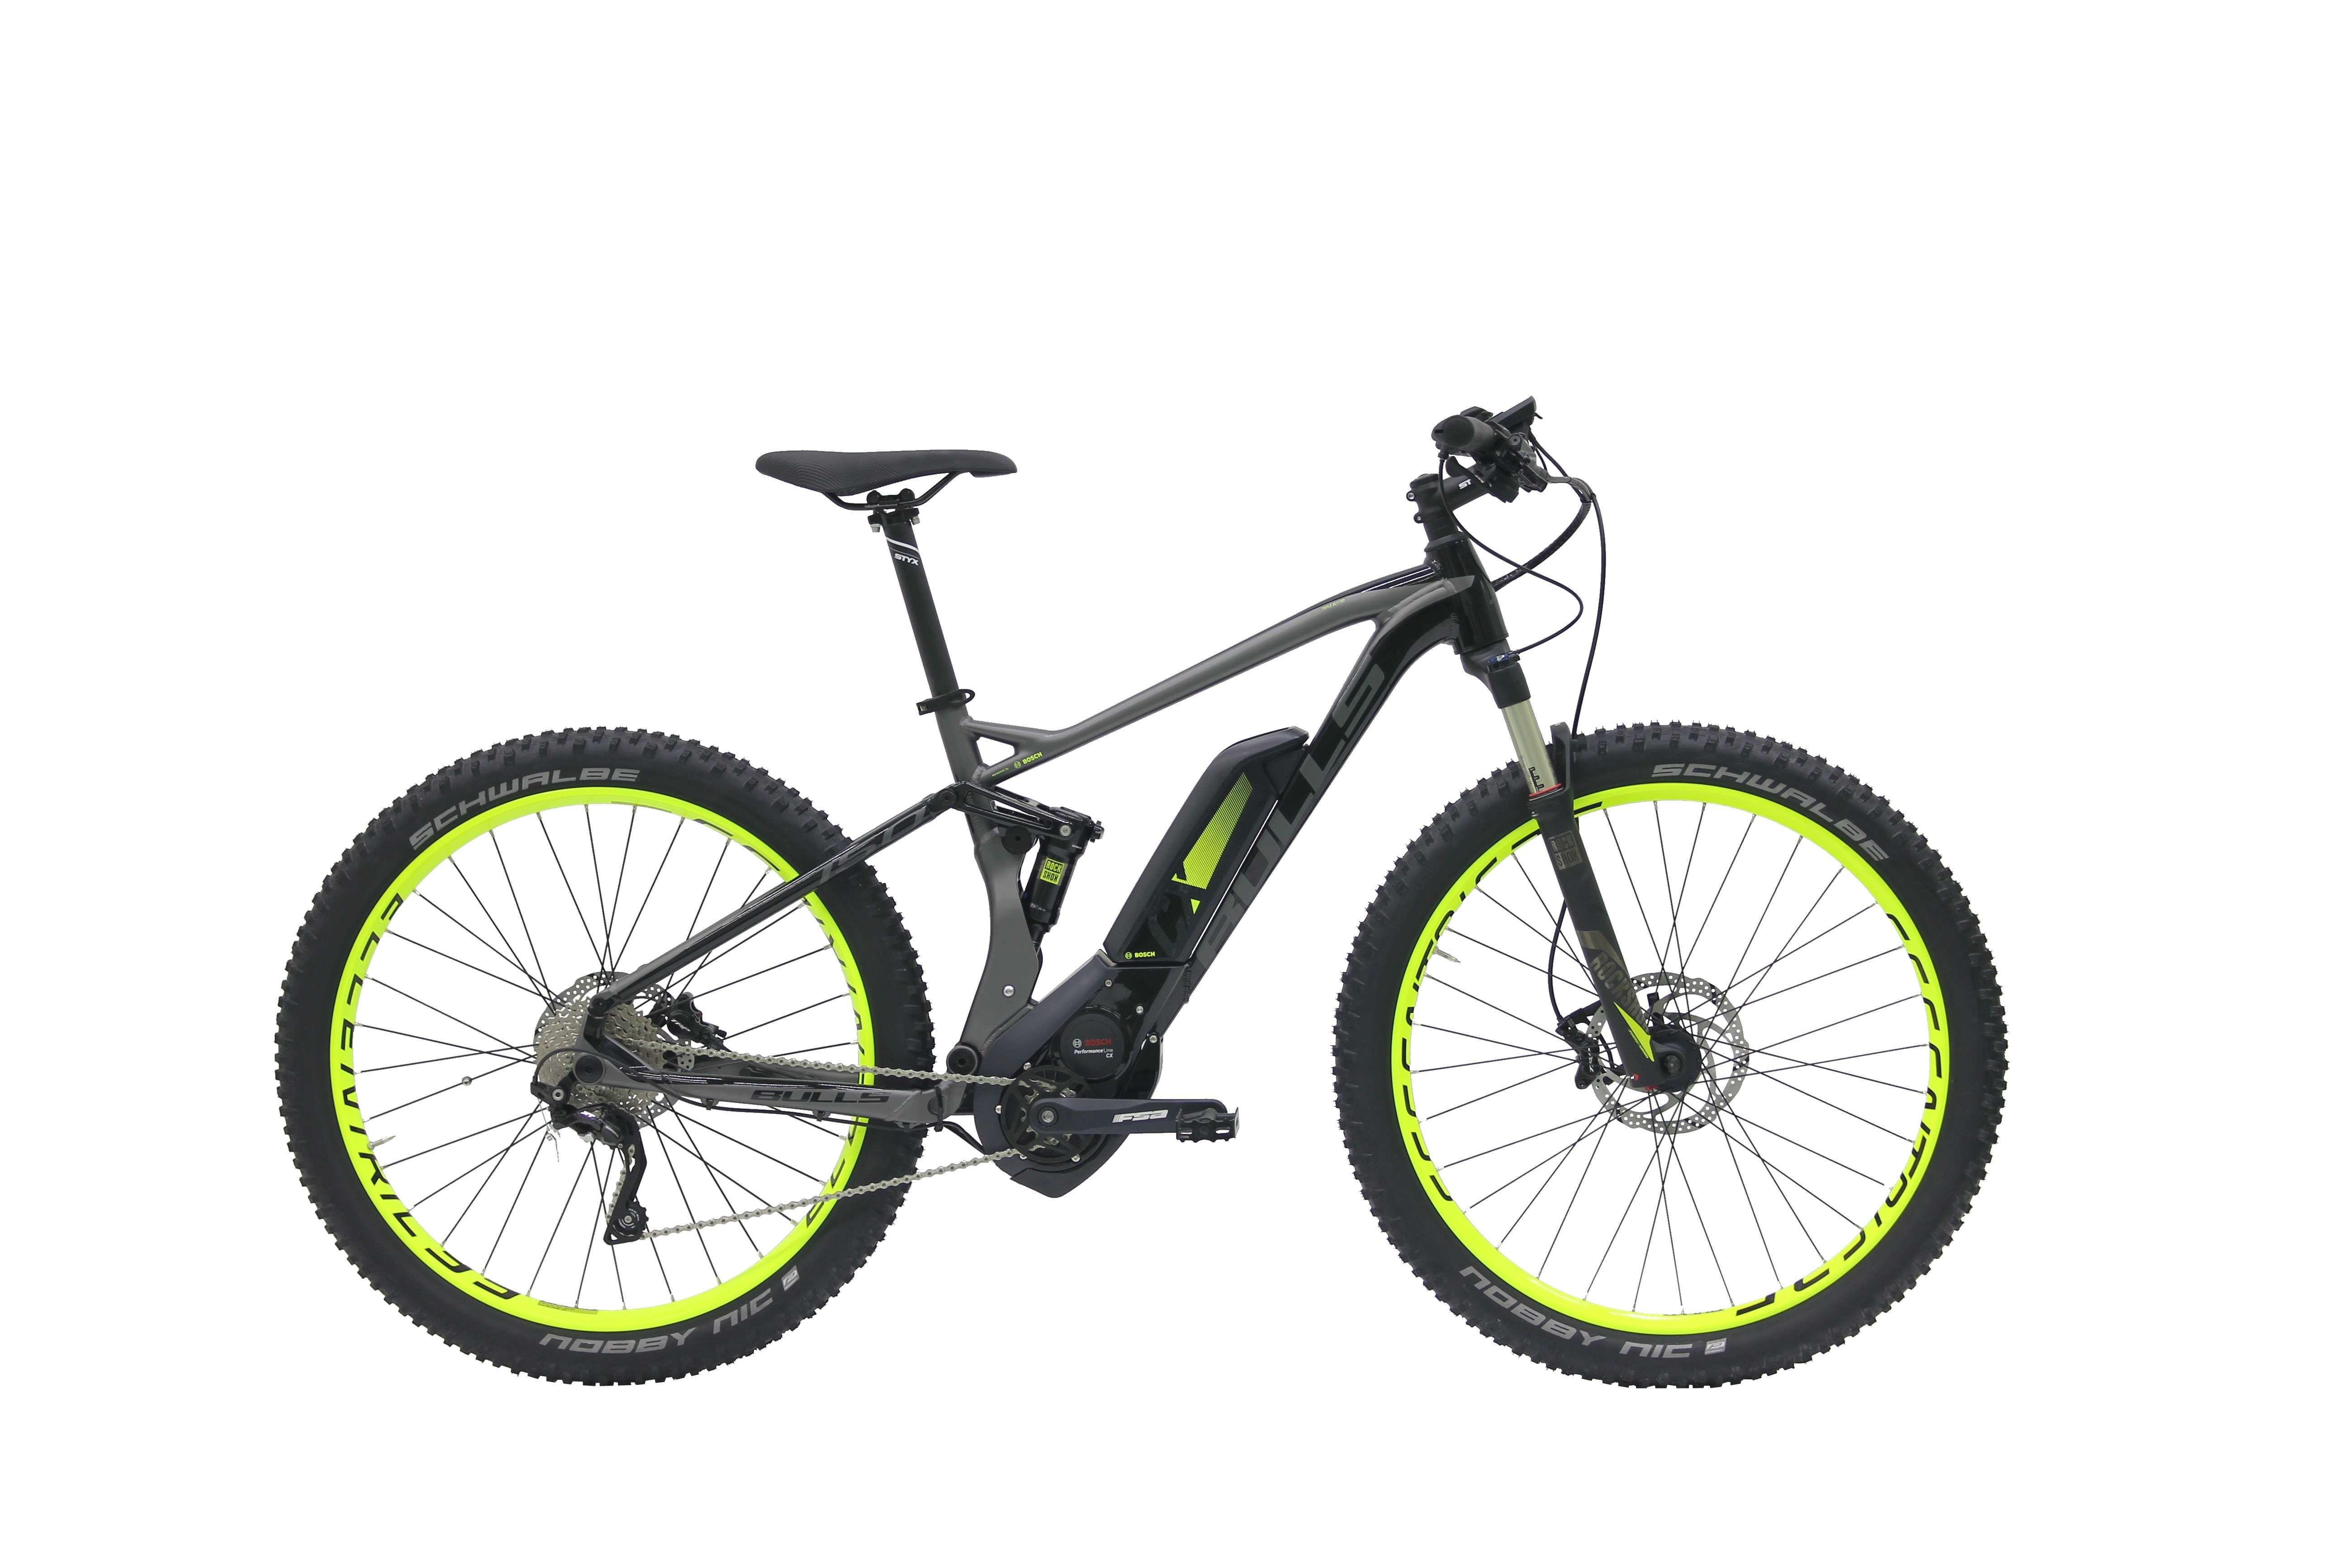 Bulls siz50+ E FS 2 E-bike from Global Bikes